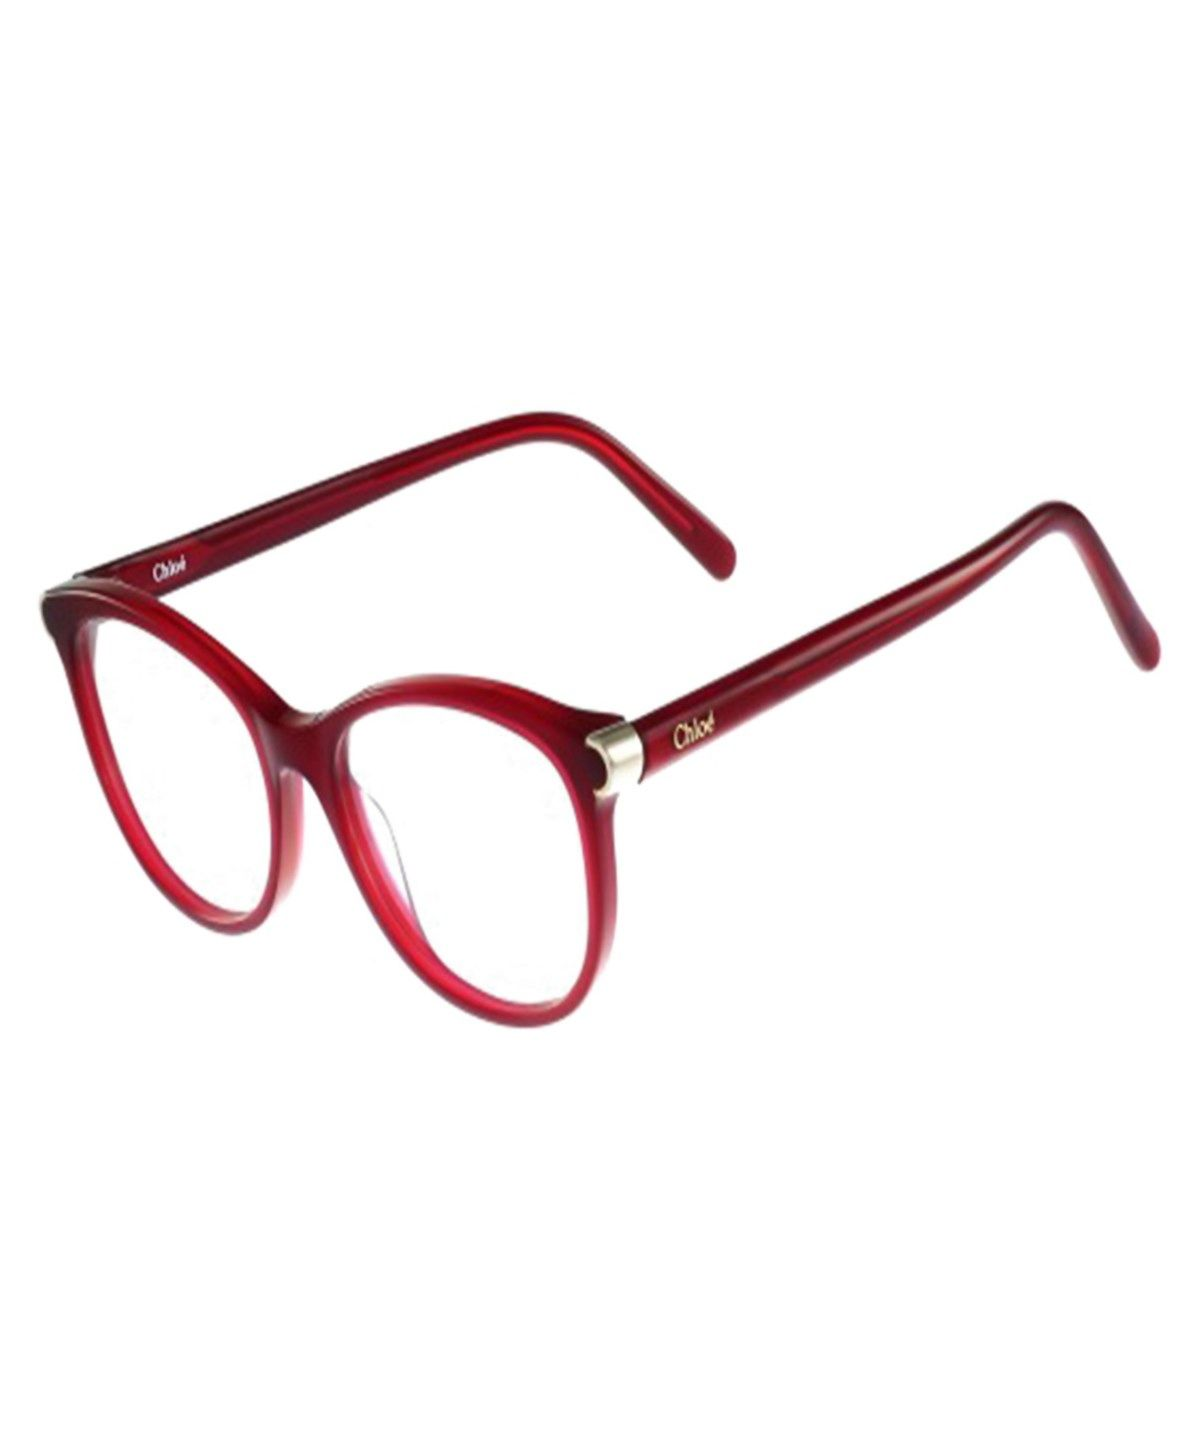 Chloe Women\'S Ce2614 Optical Frames\', Bordeaux | Pinterest | Optical ...